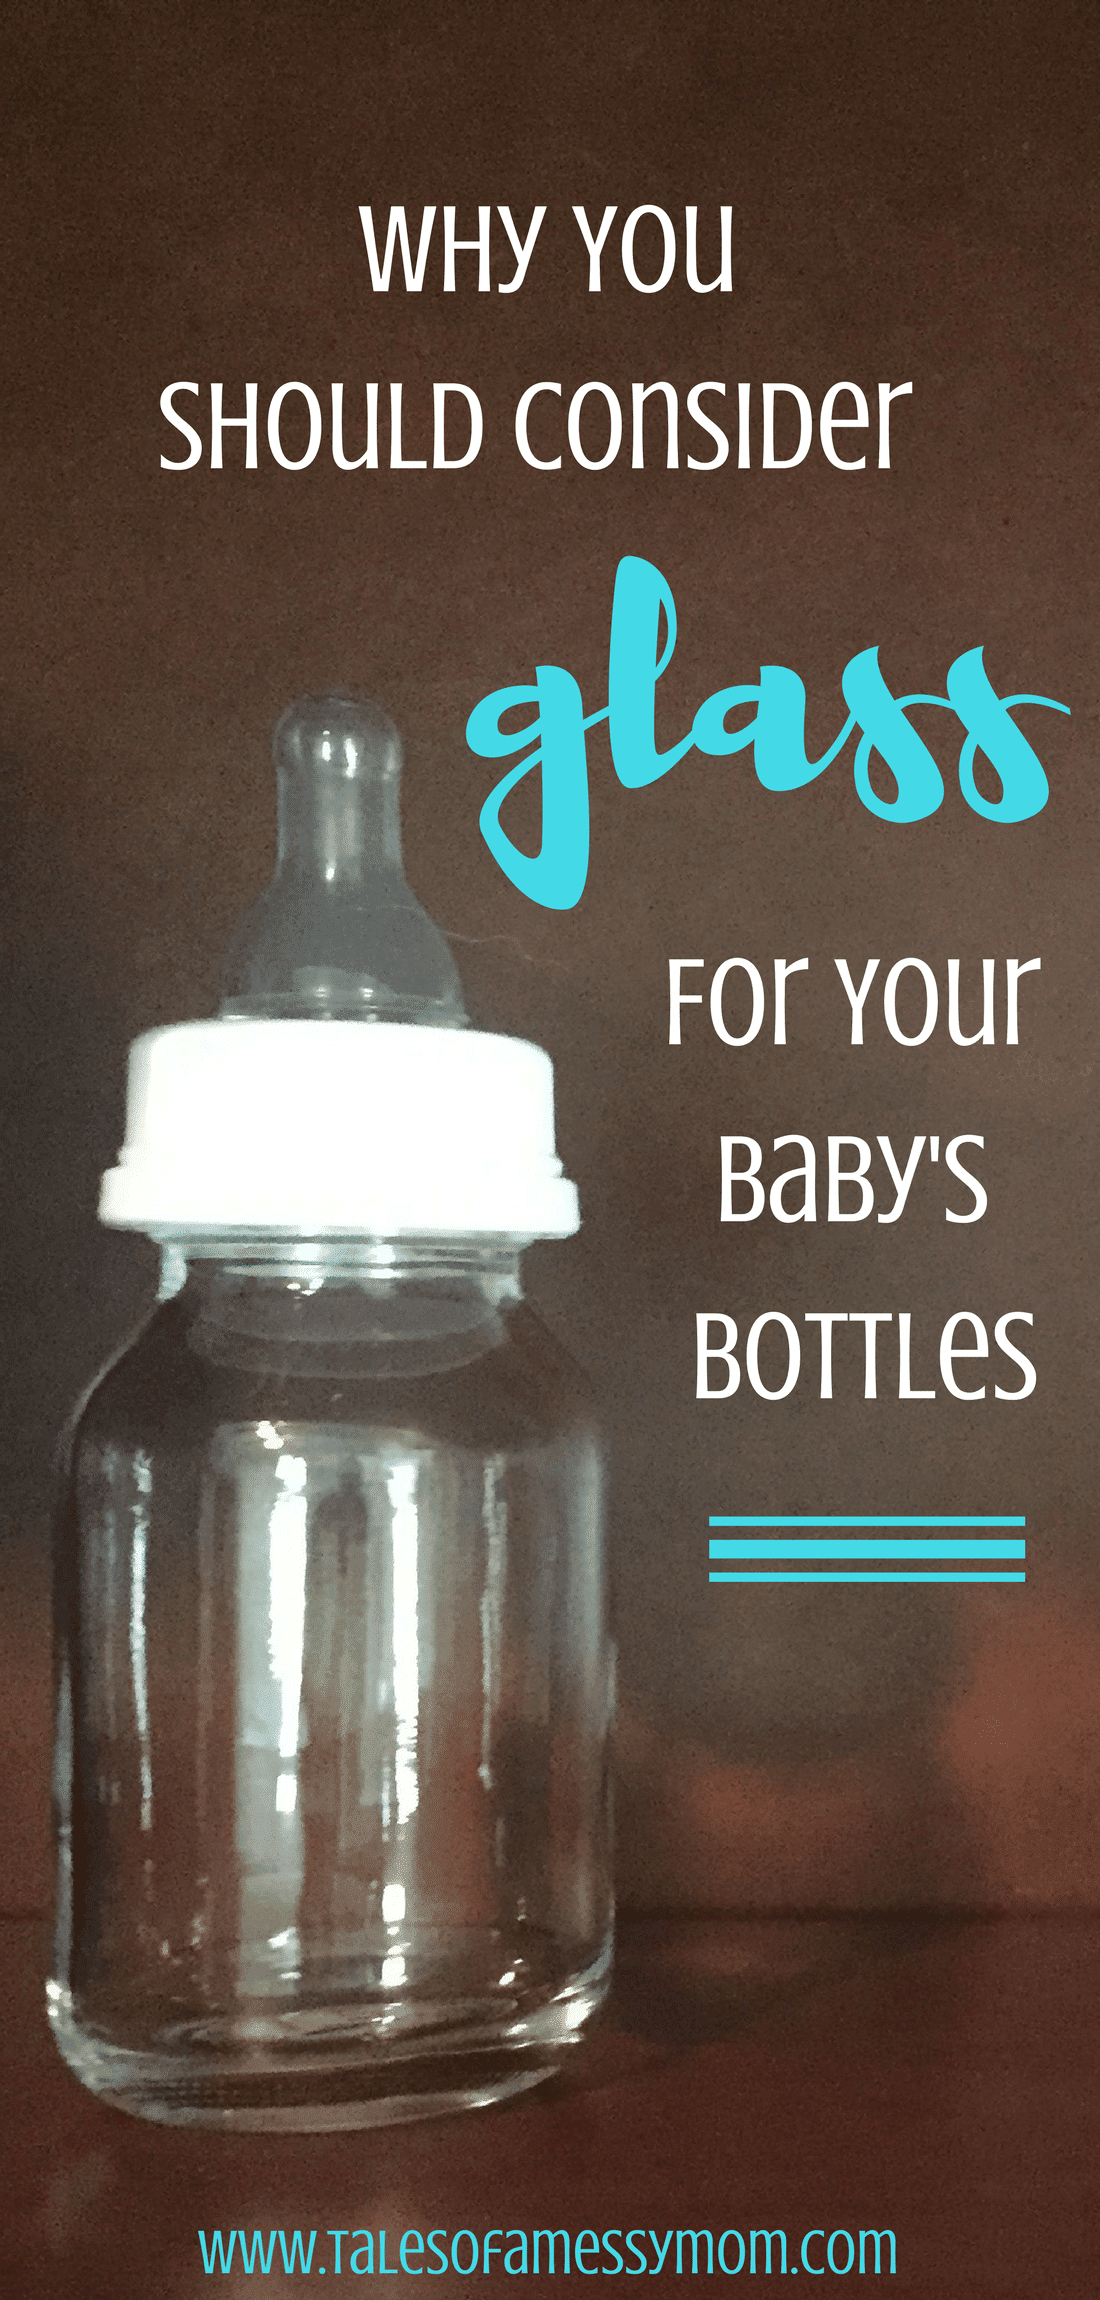 Here are 7 amazing benefits that will make you want to choose glass for your baby's bottles. http://talesofamessymom.com